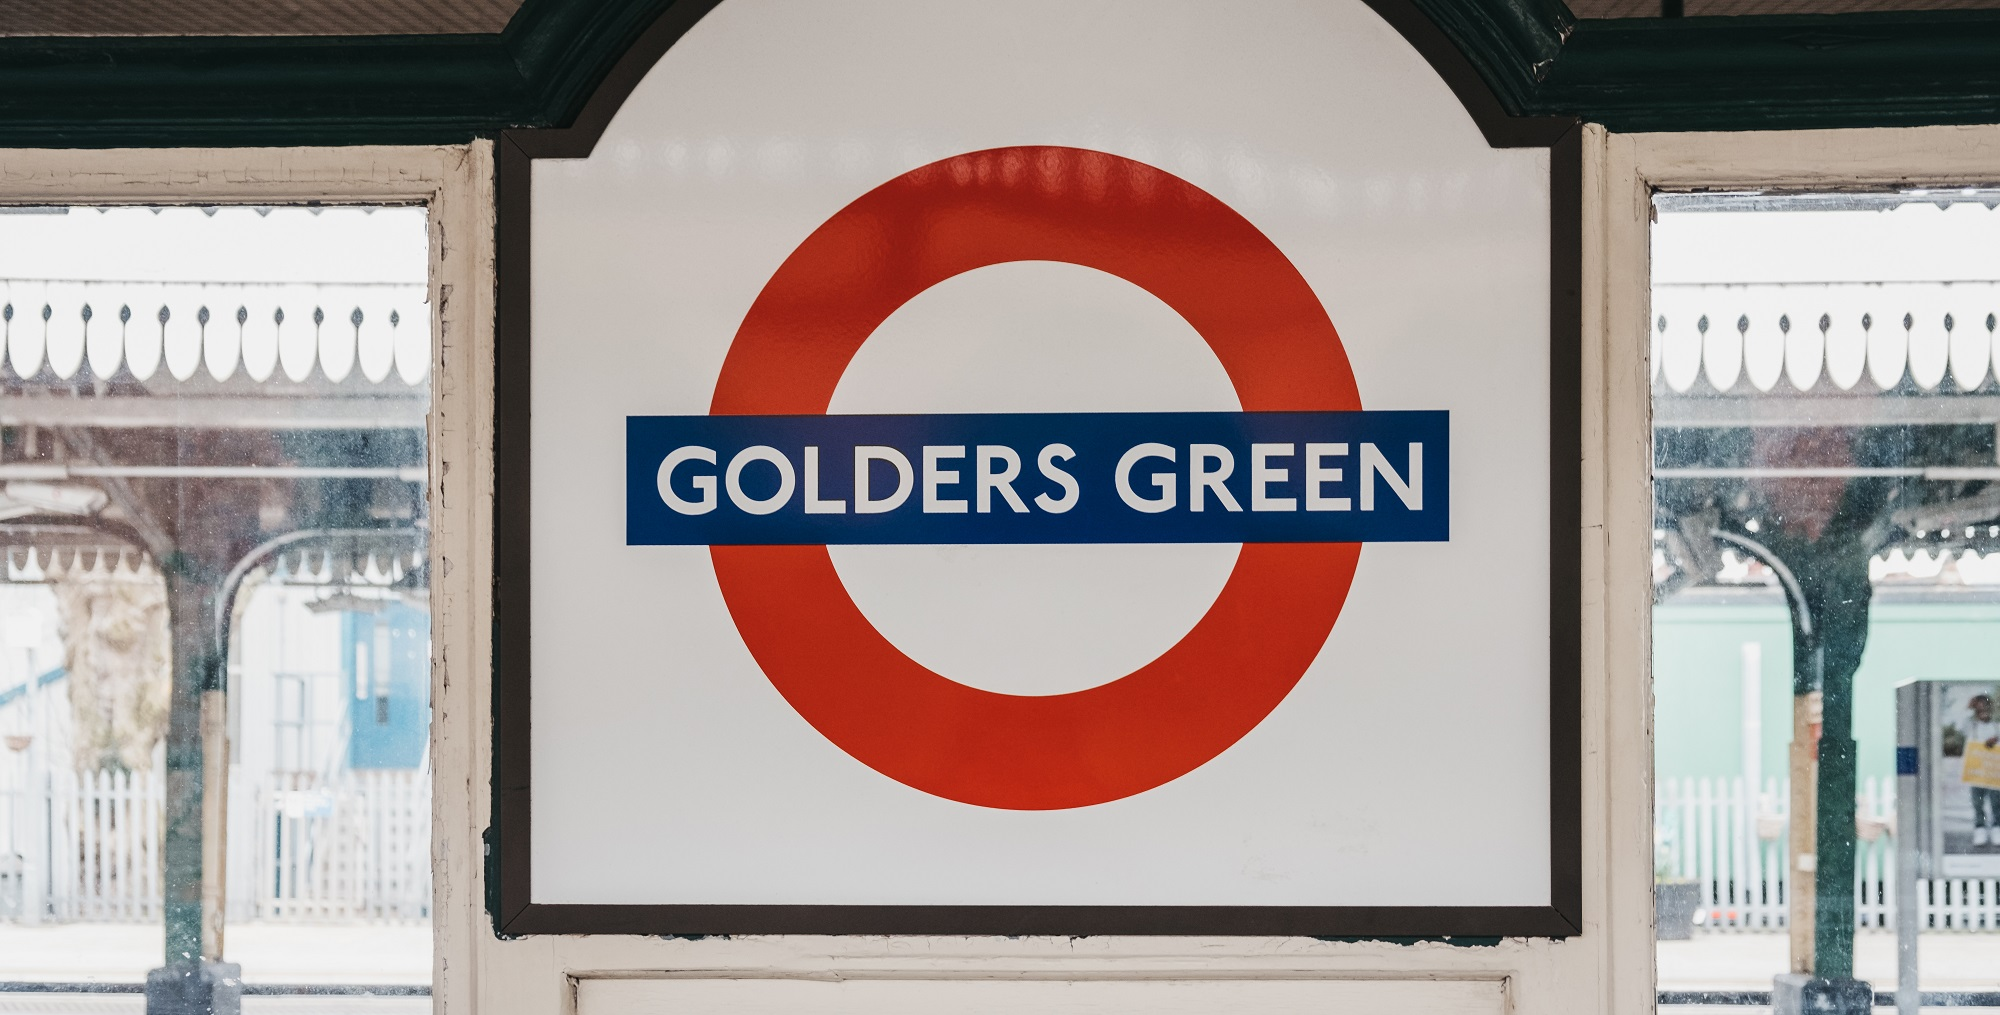 5 of the best properties to buy near Golders Green